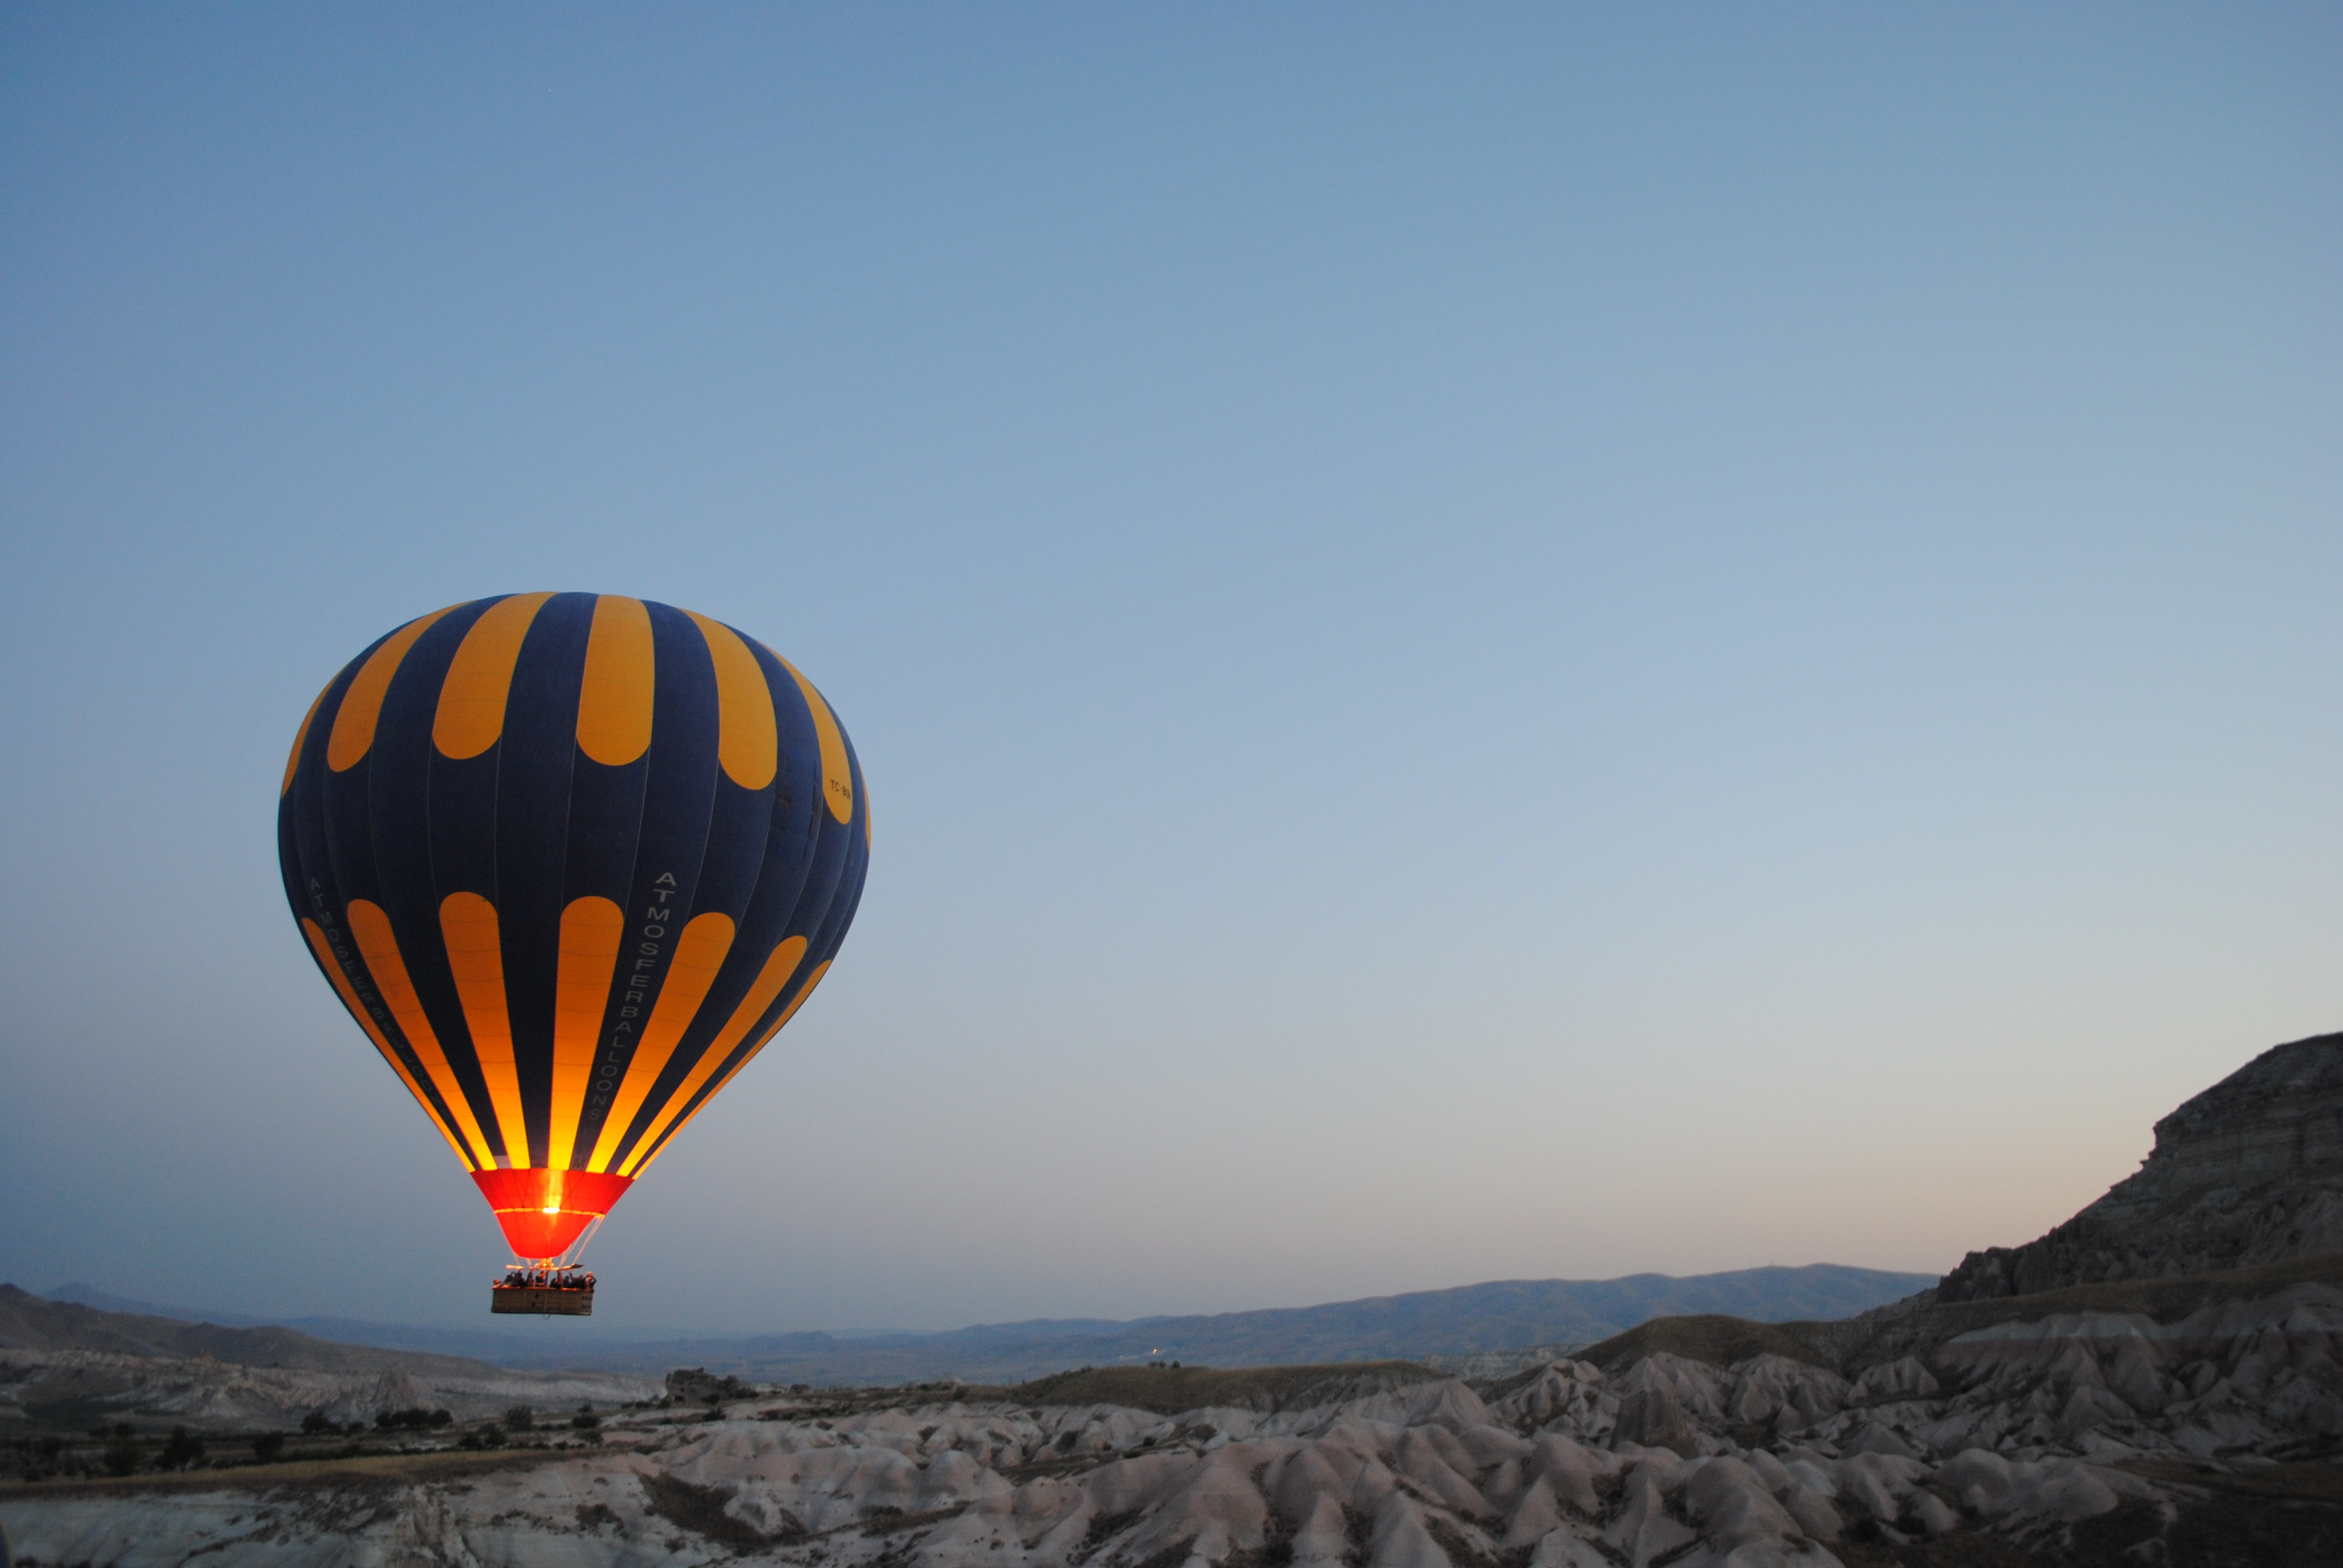 Hot air balloon floats over a mountain landscape at dusk